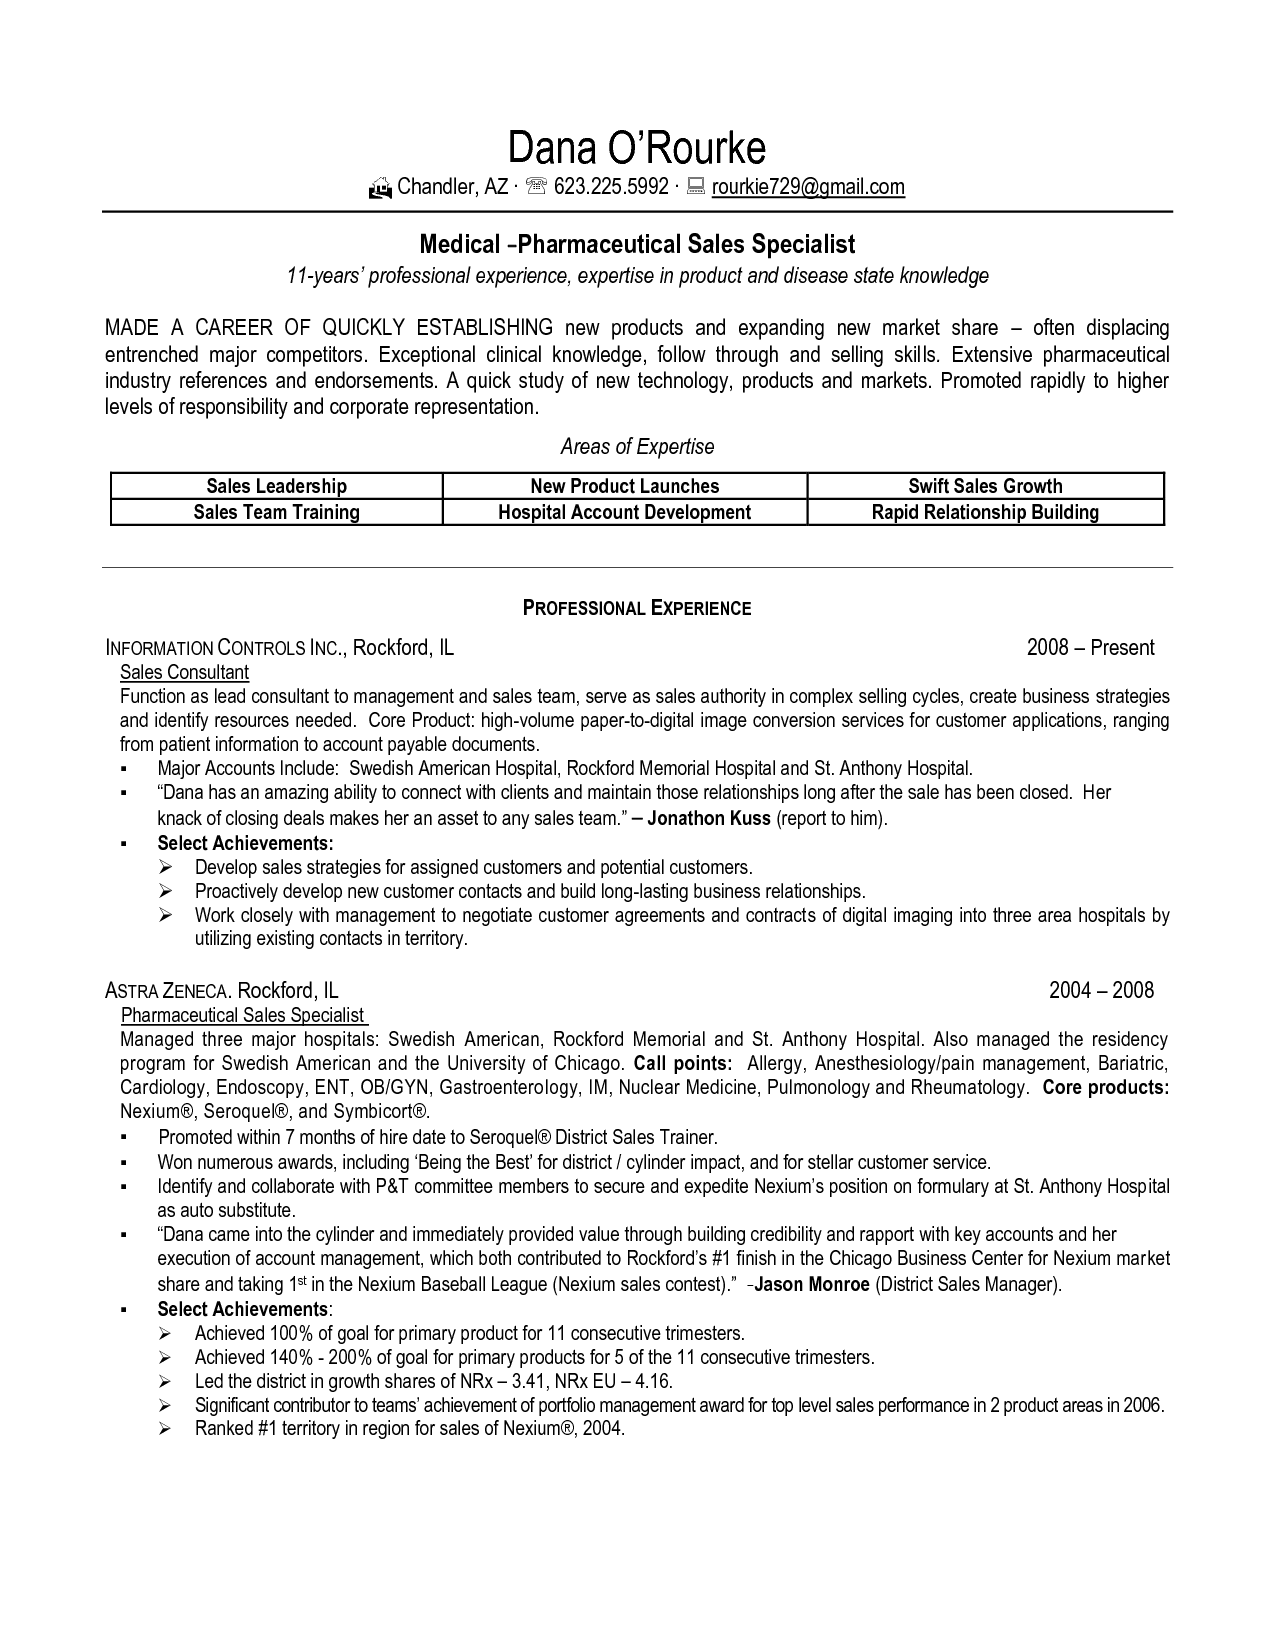 sample resume for pharmaceutical industry sample resume for sample resume for pharmaceutical industry sample resume for pharmaceutical industry sample resume for pharmaceutical s sample